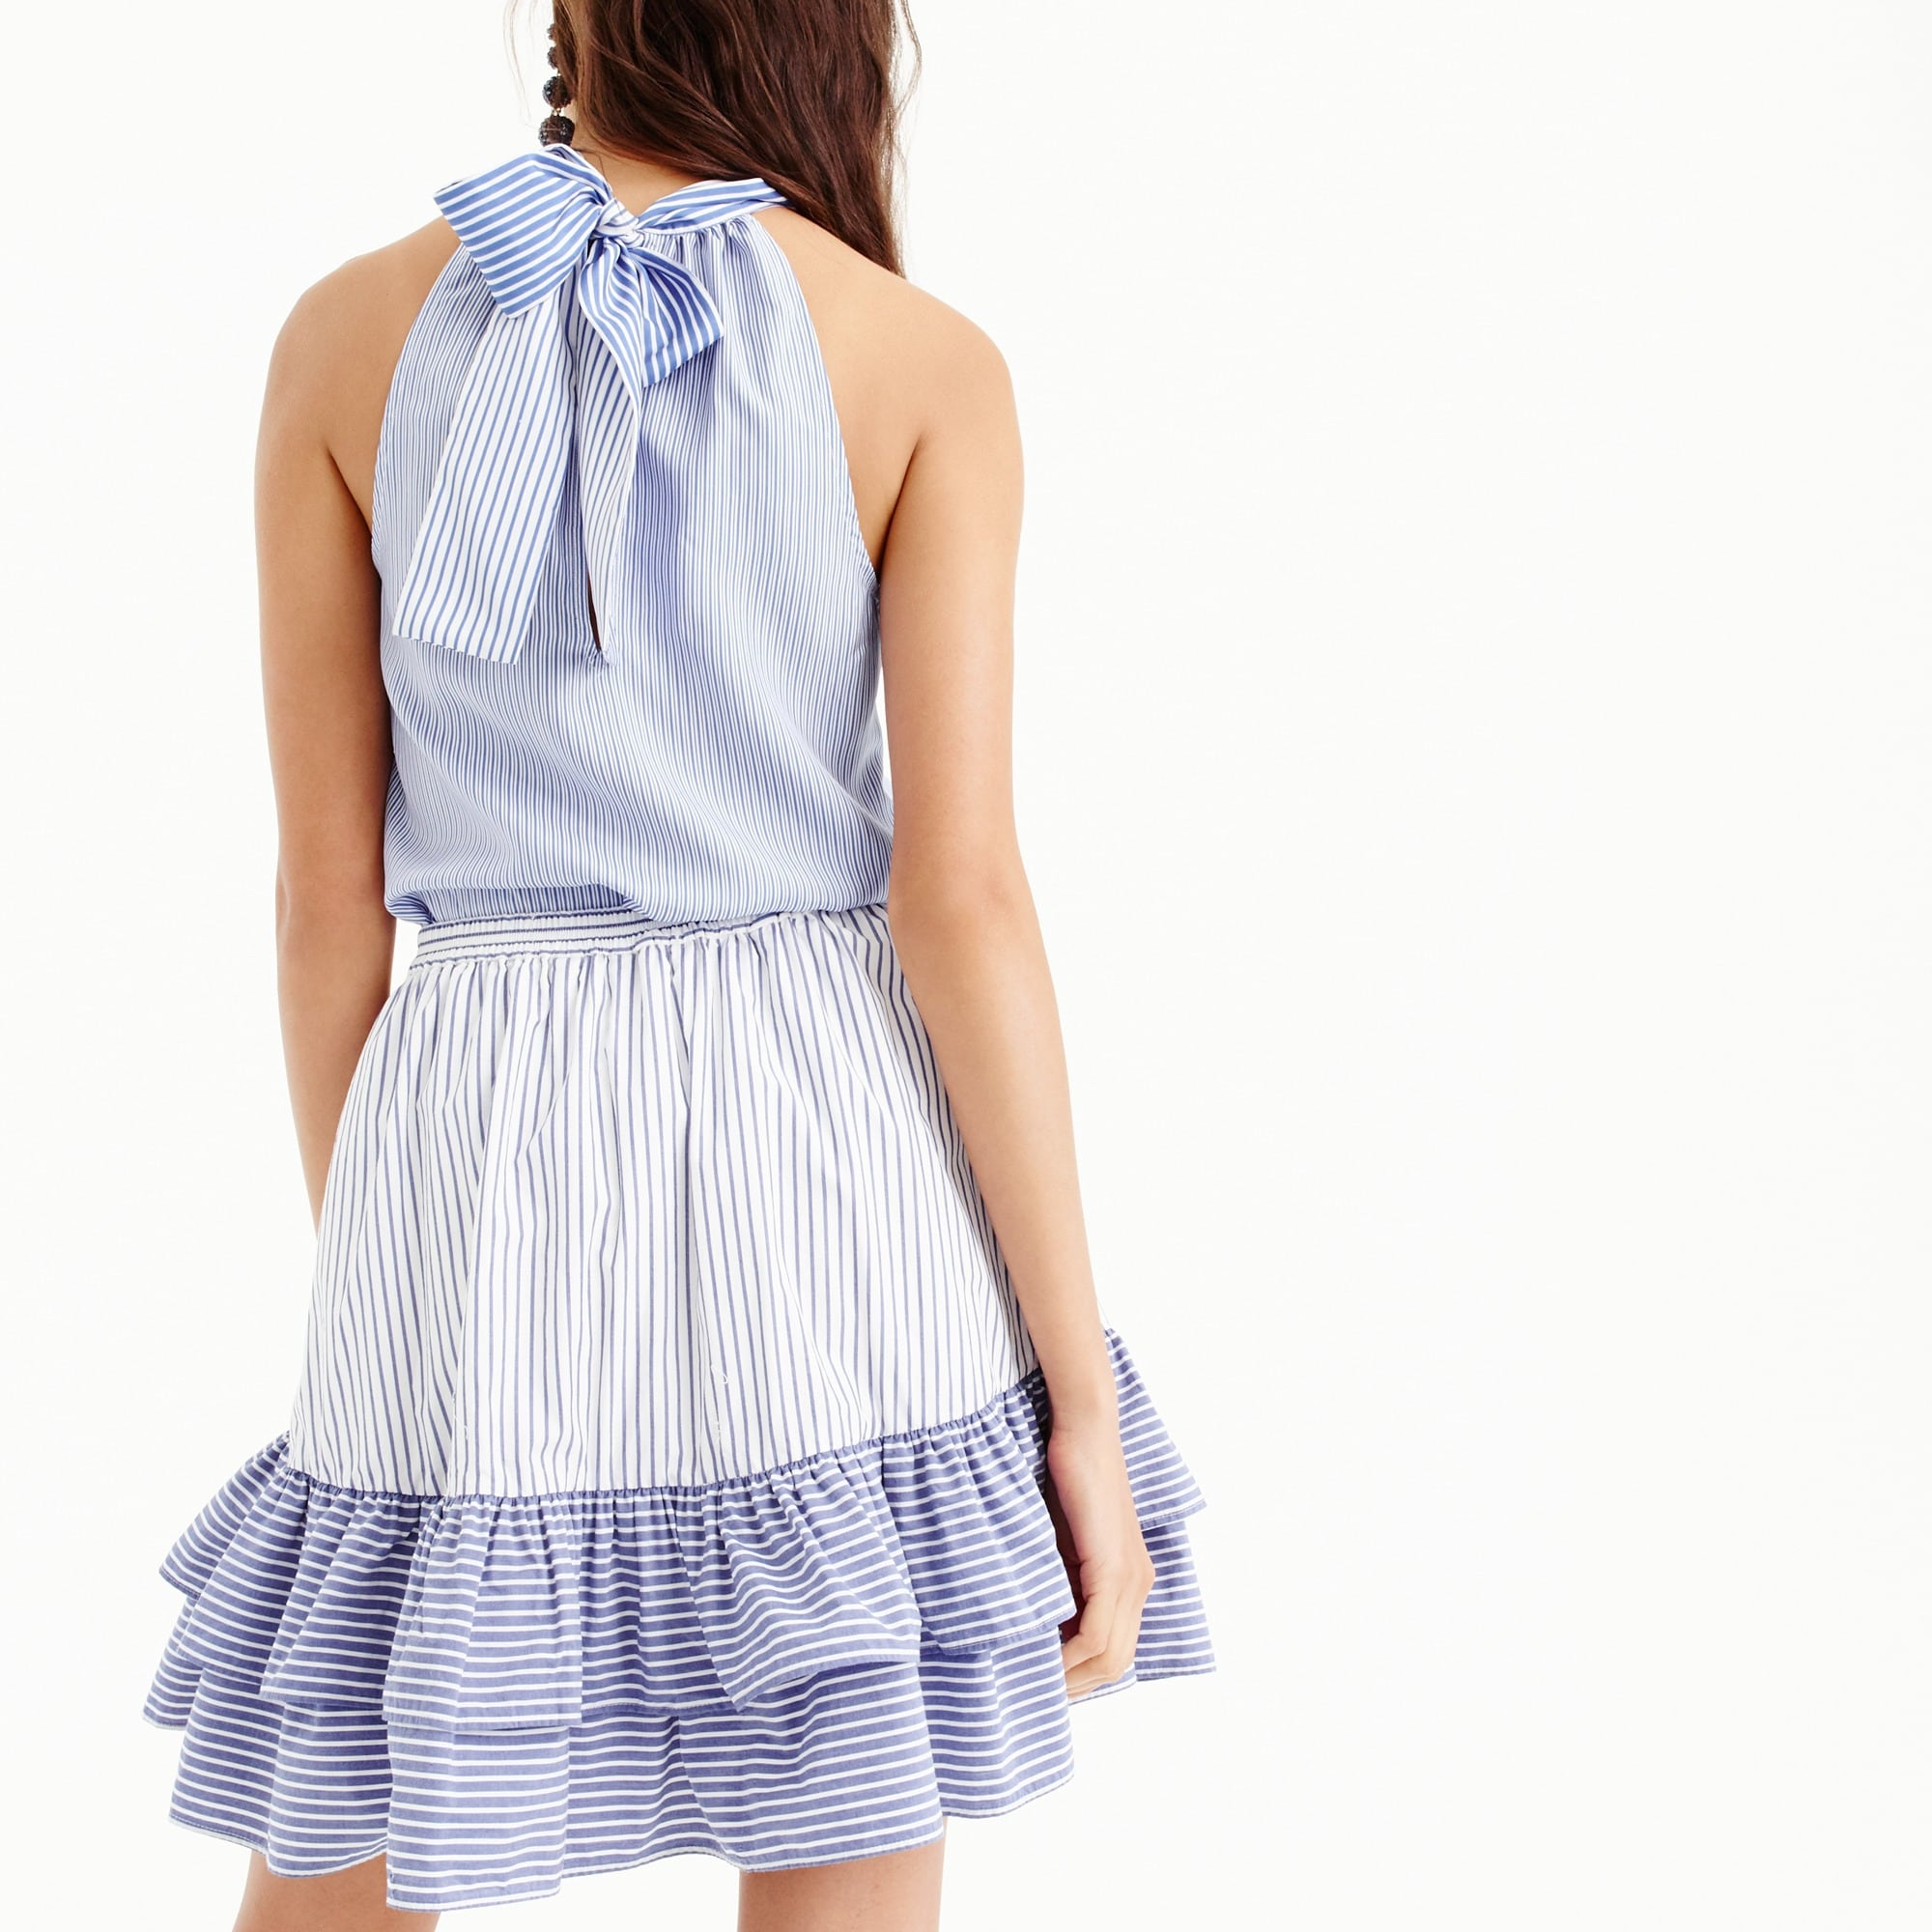 Striped ruffle skirt